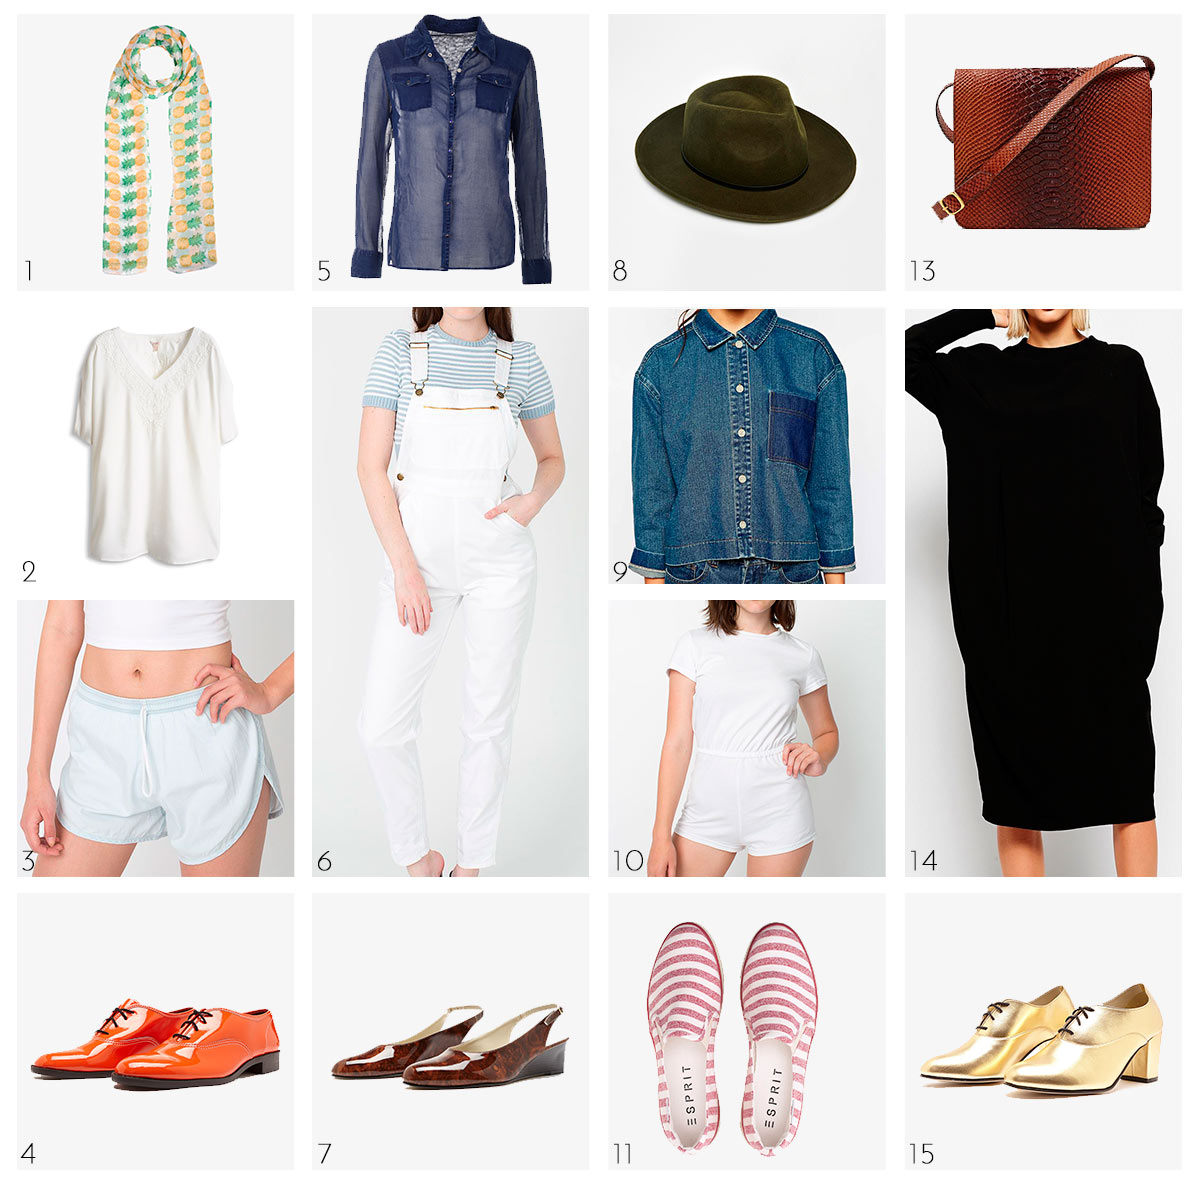 selection_shopping